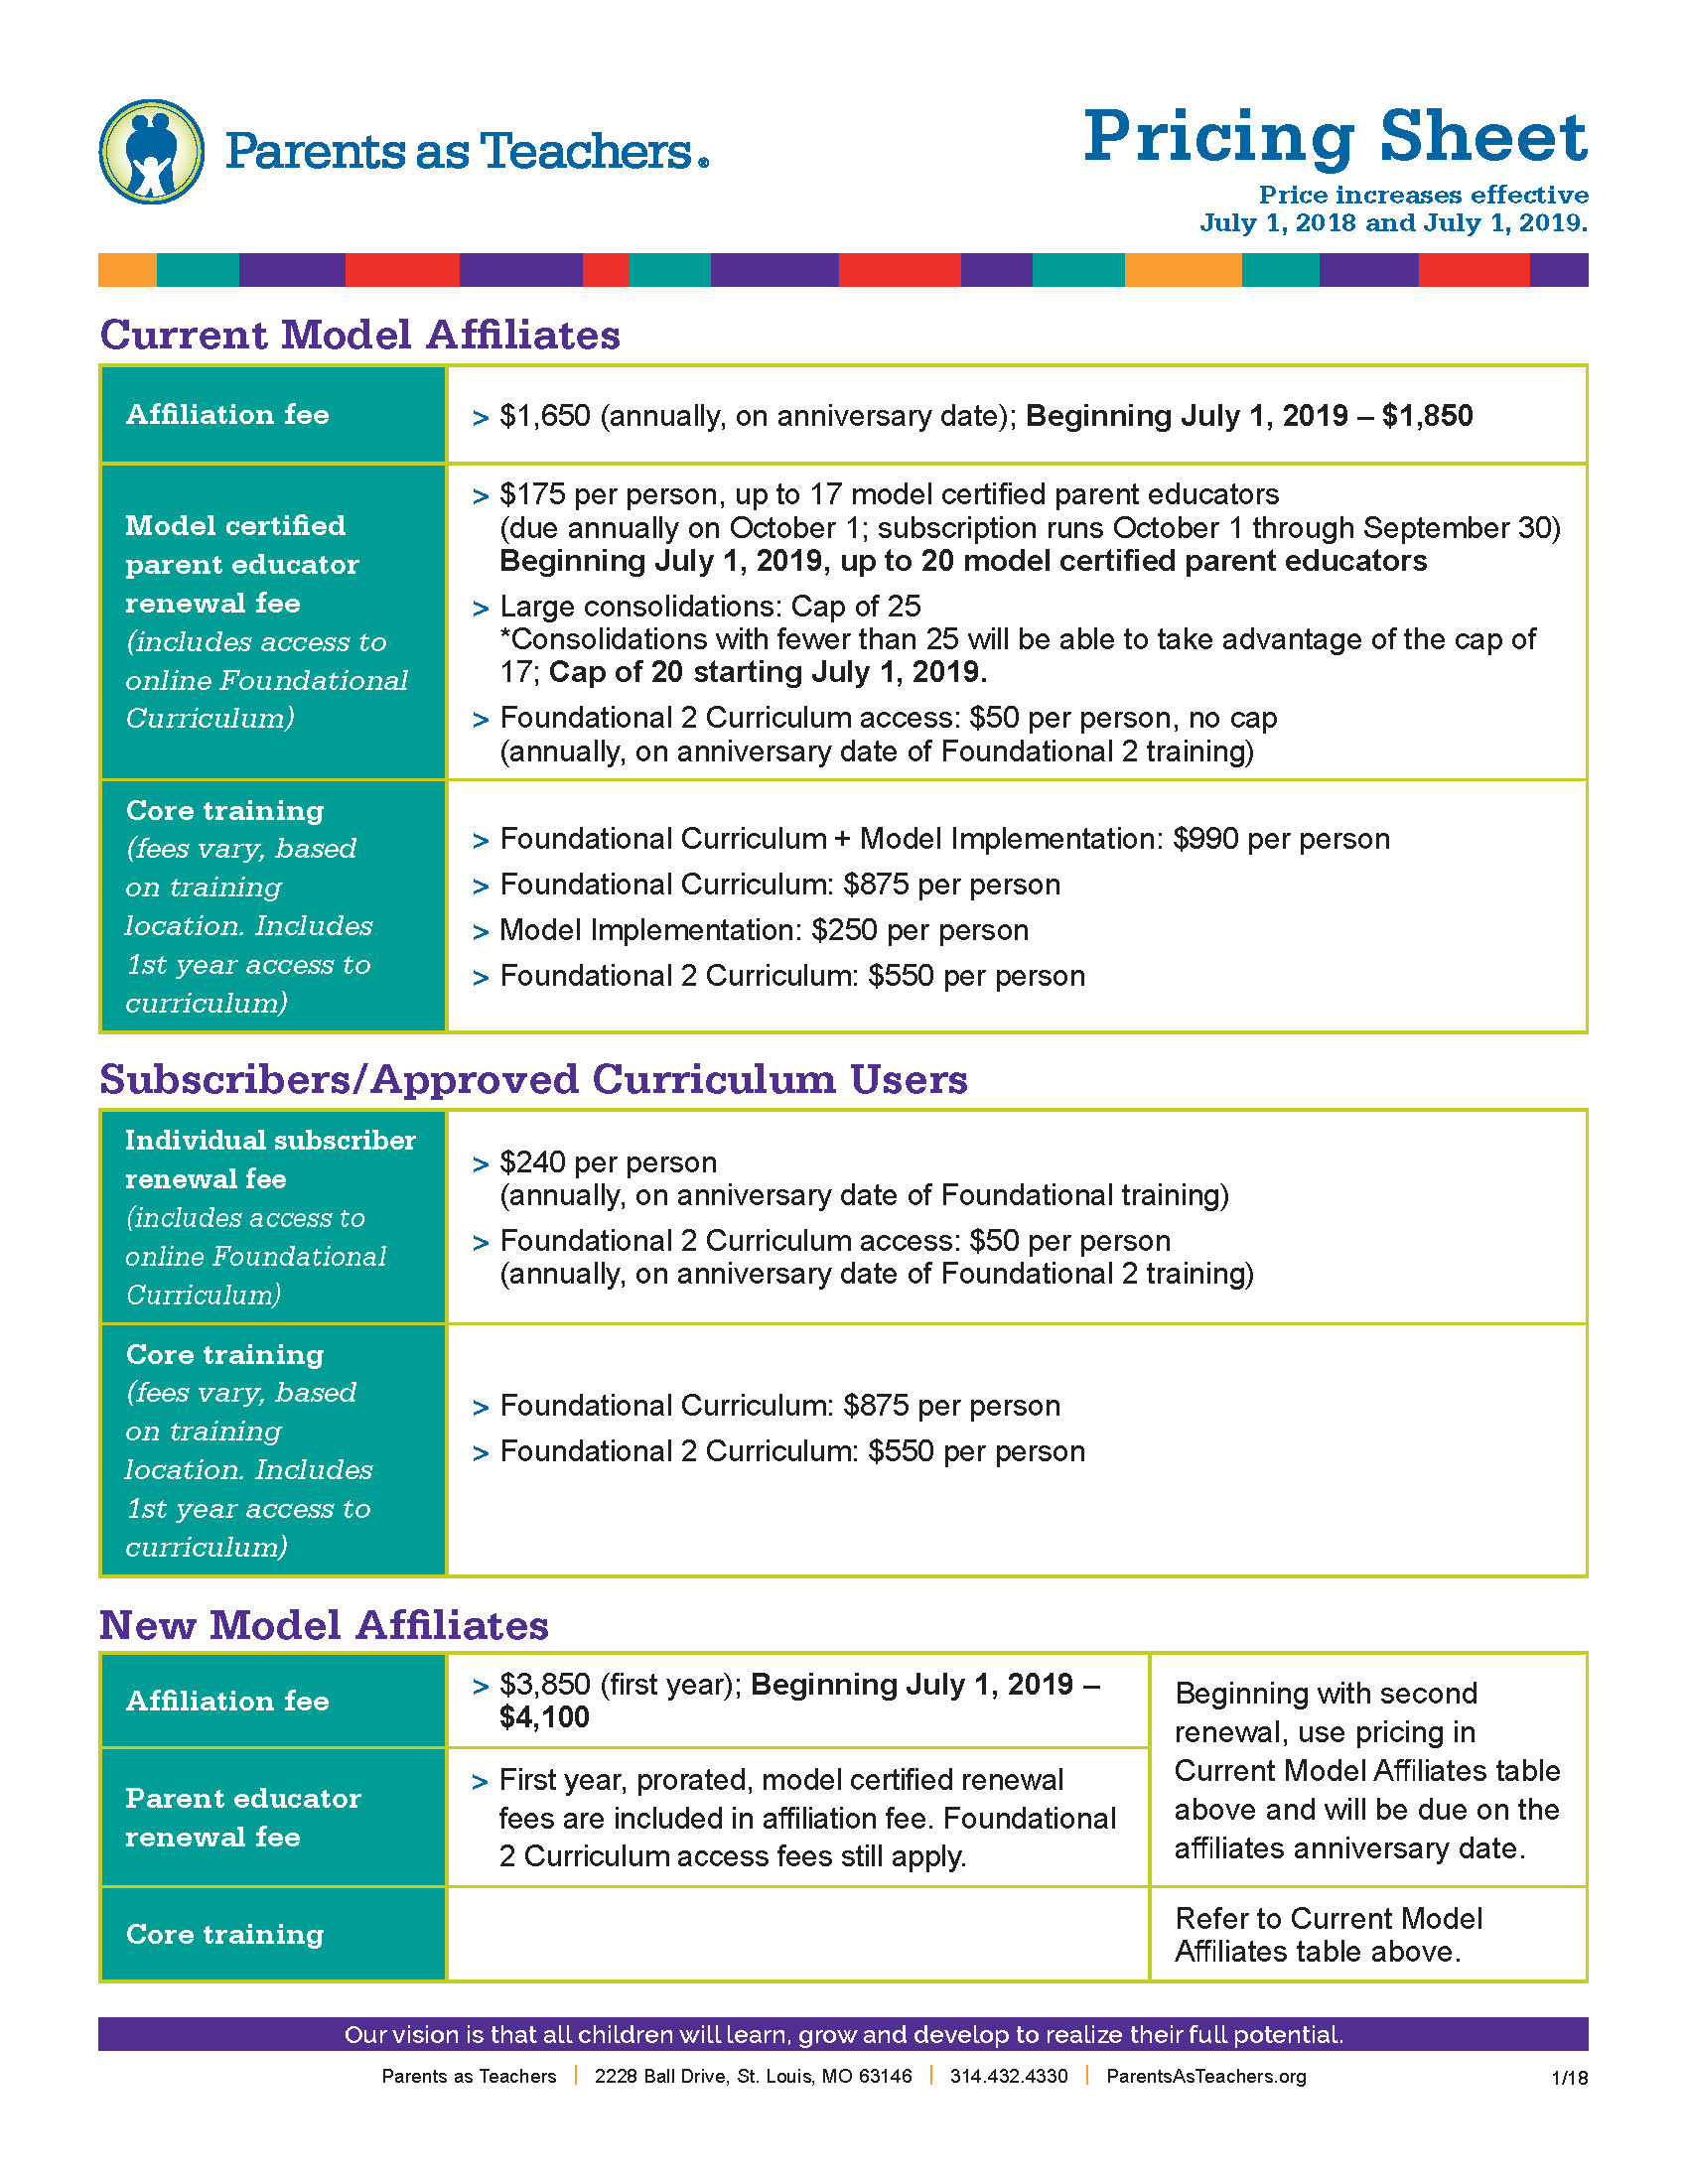 Click image above for PDF version of current pricing sheet